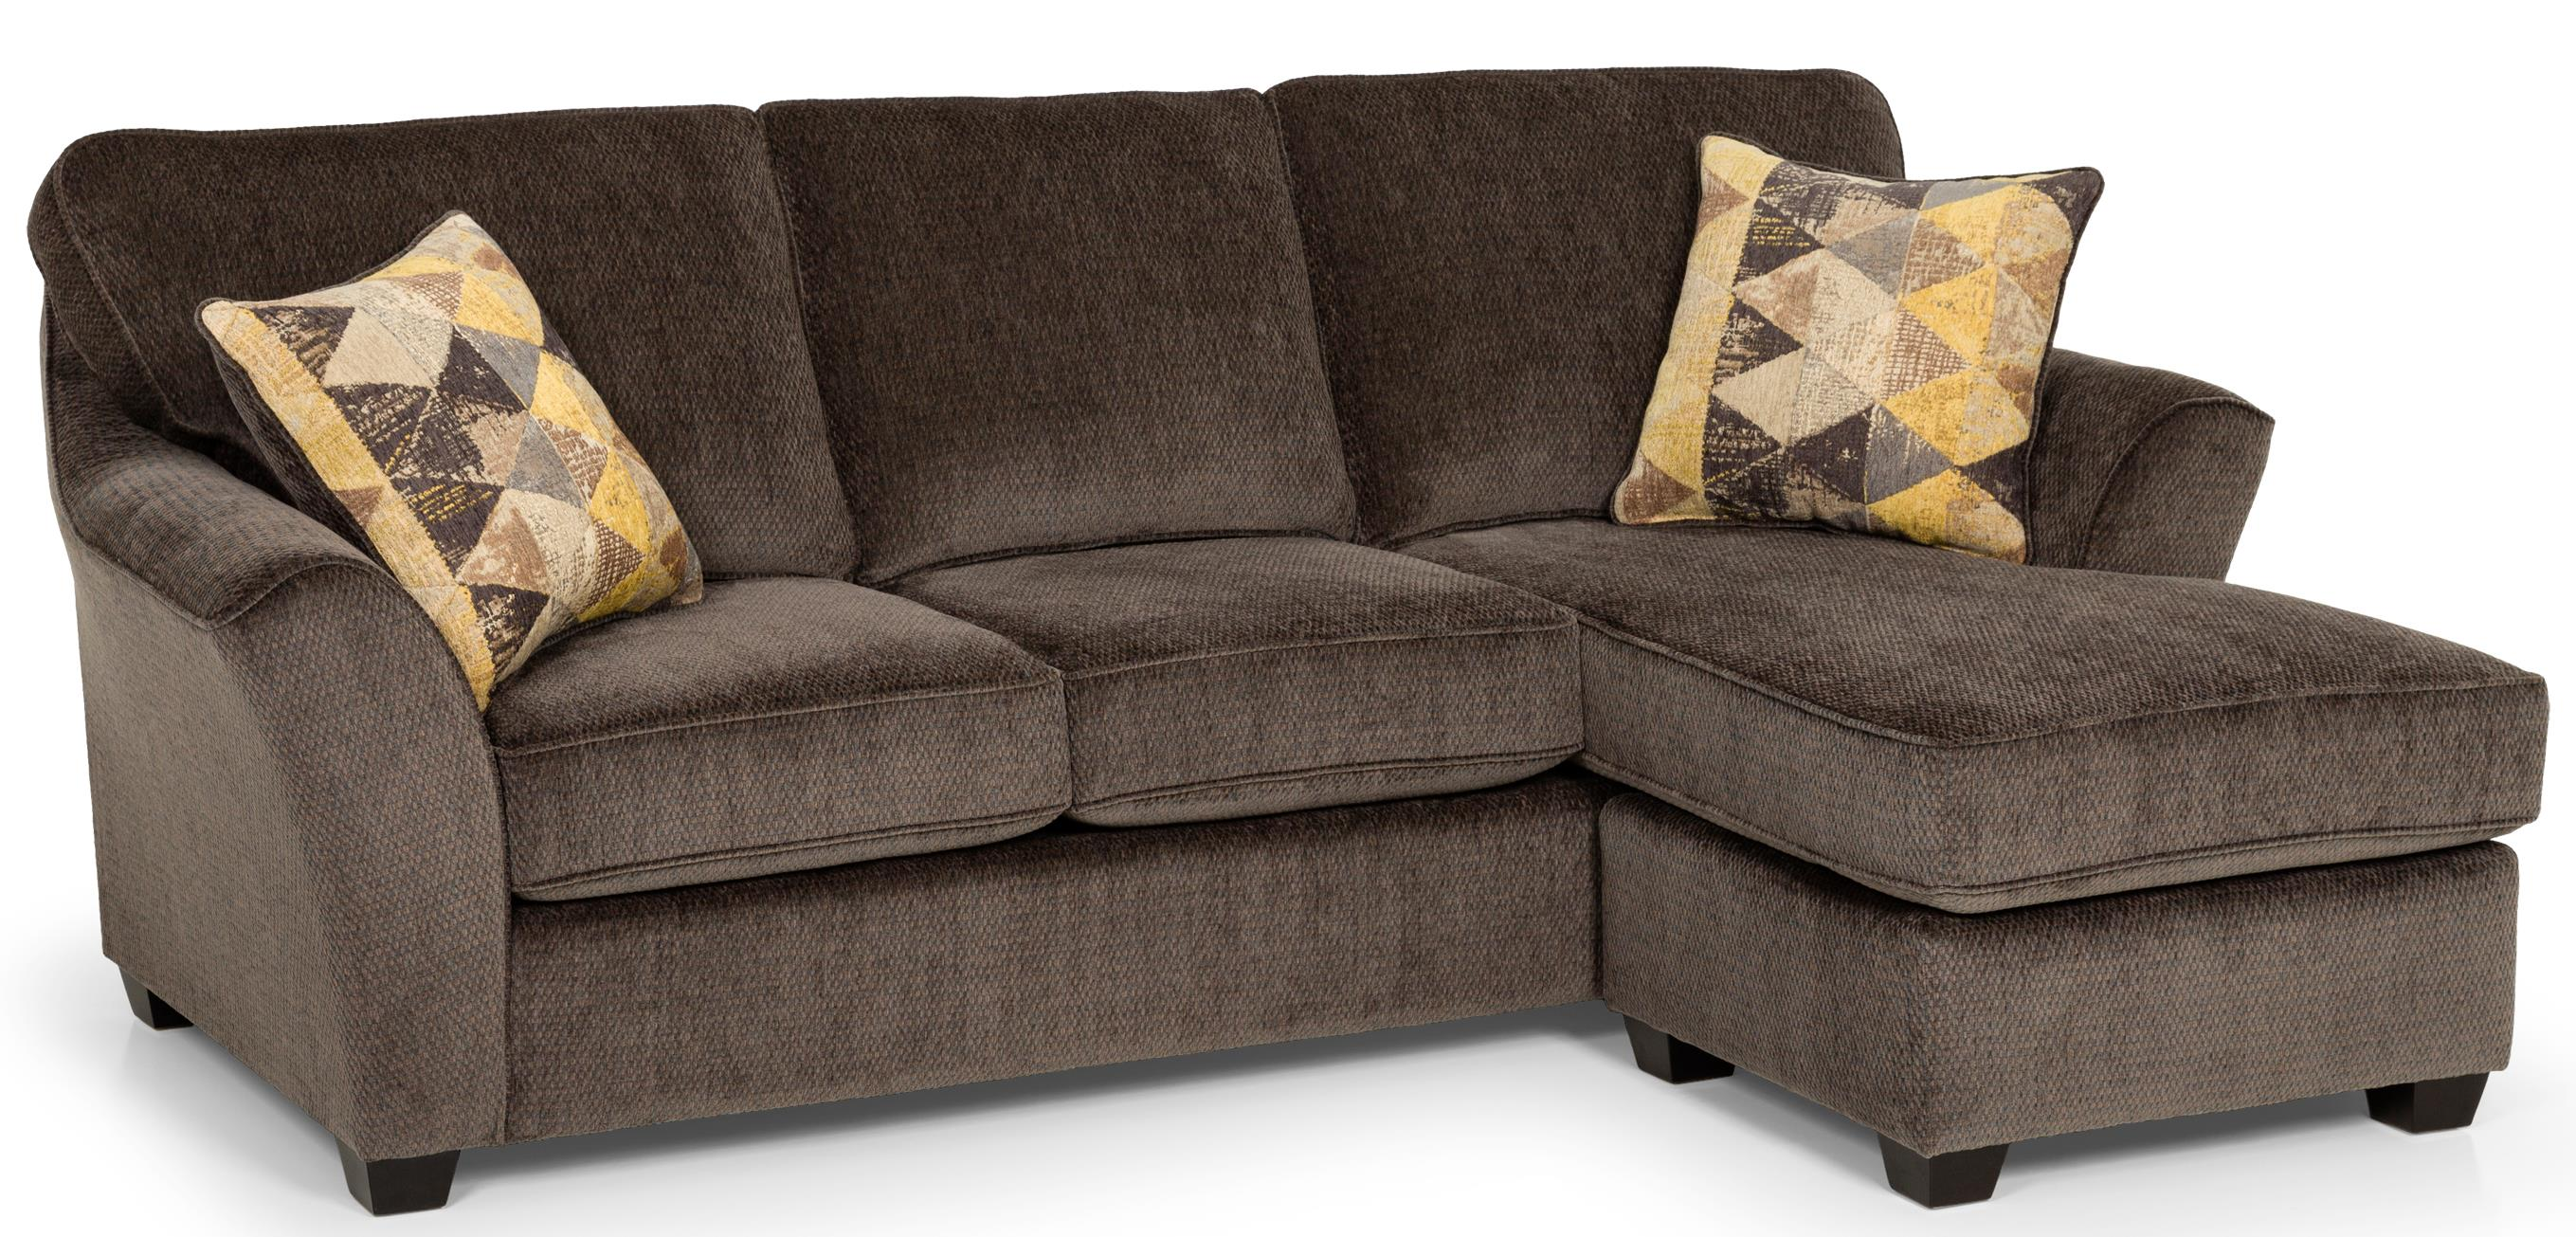 112 Chaise Sofa by Stanton at Wilson's Furniture